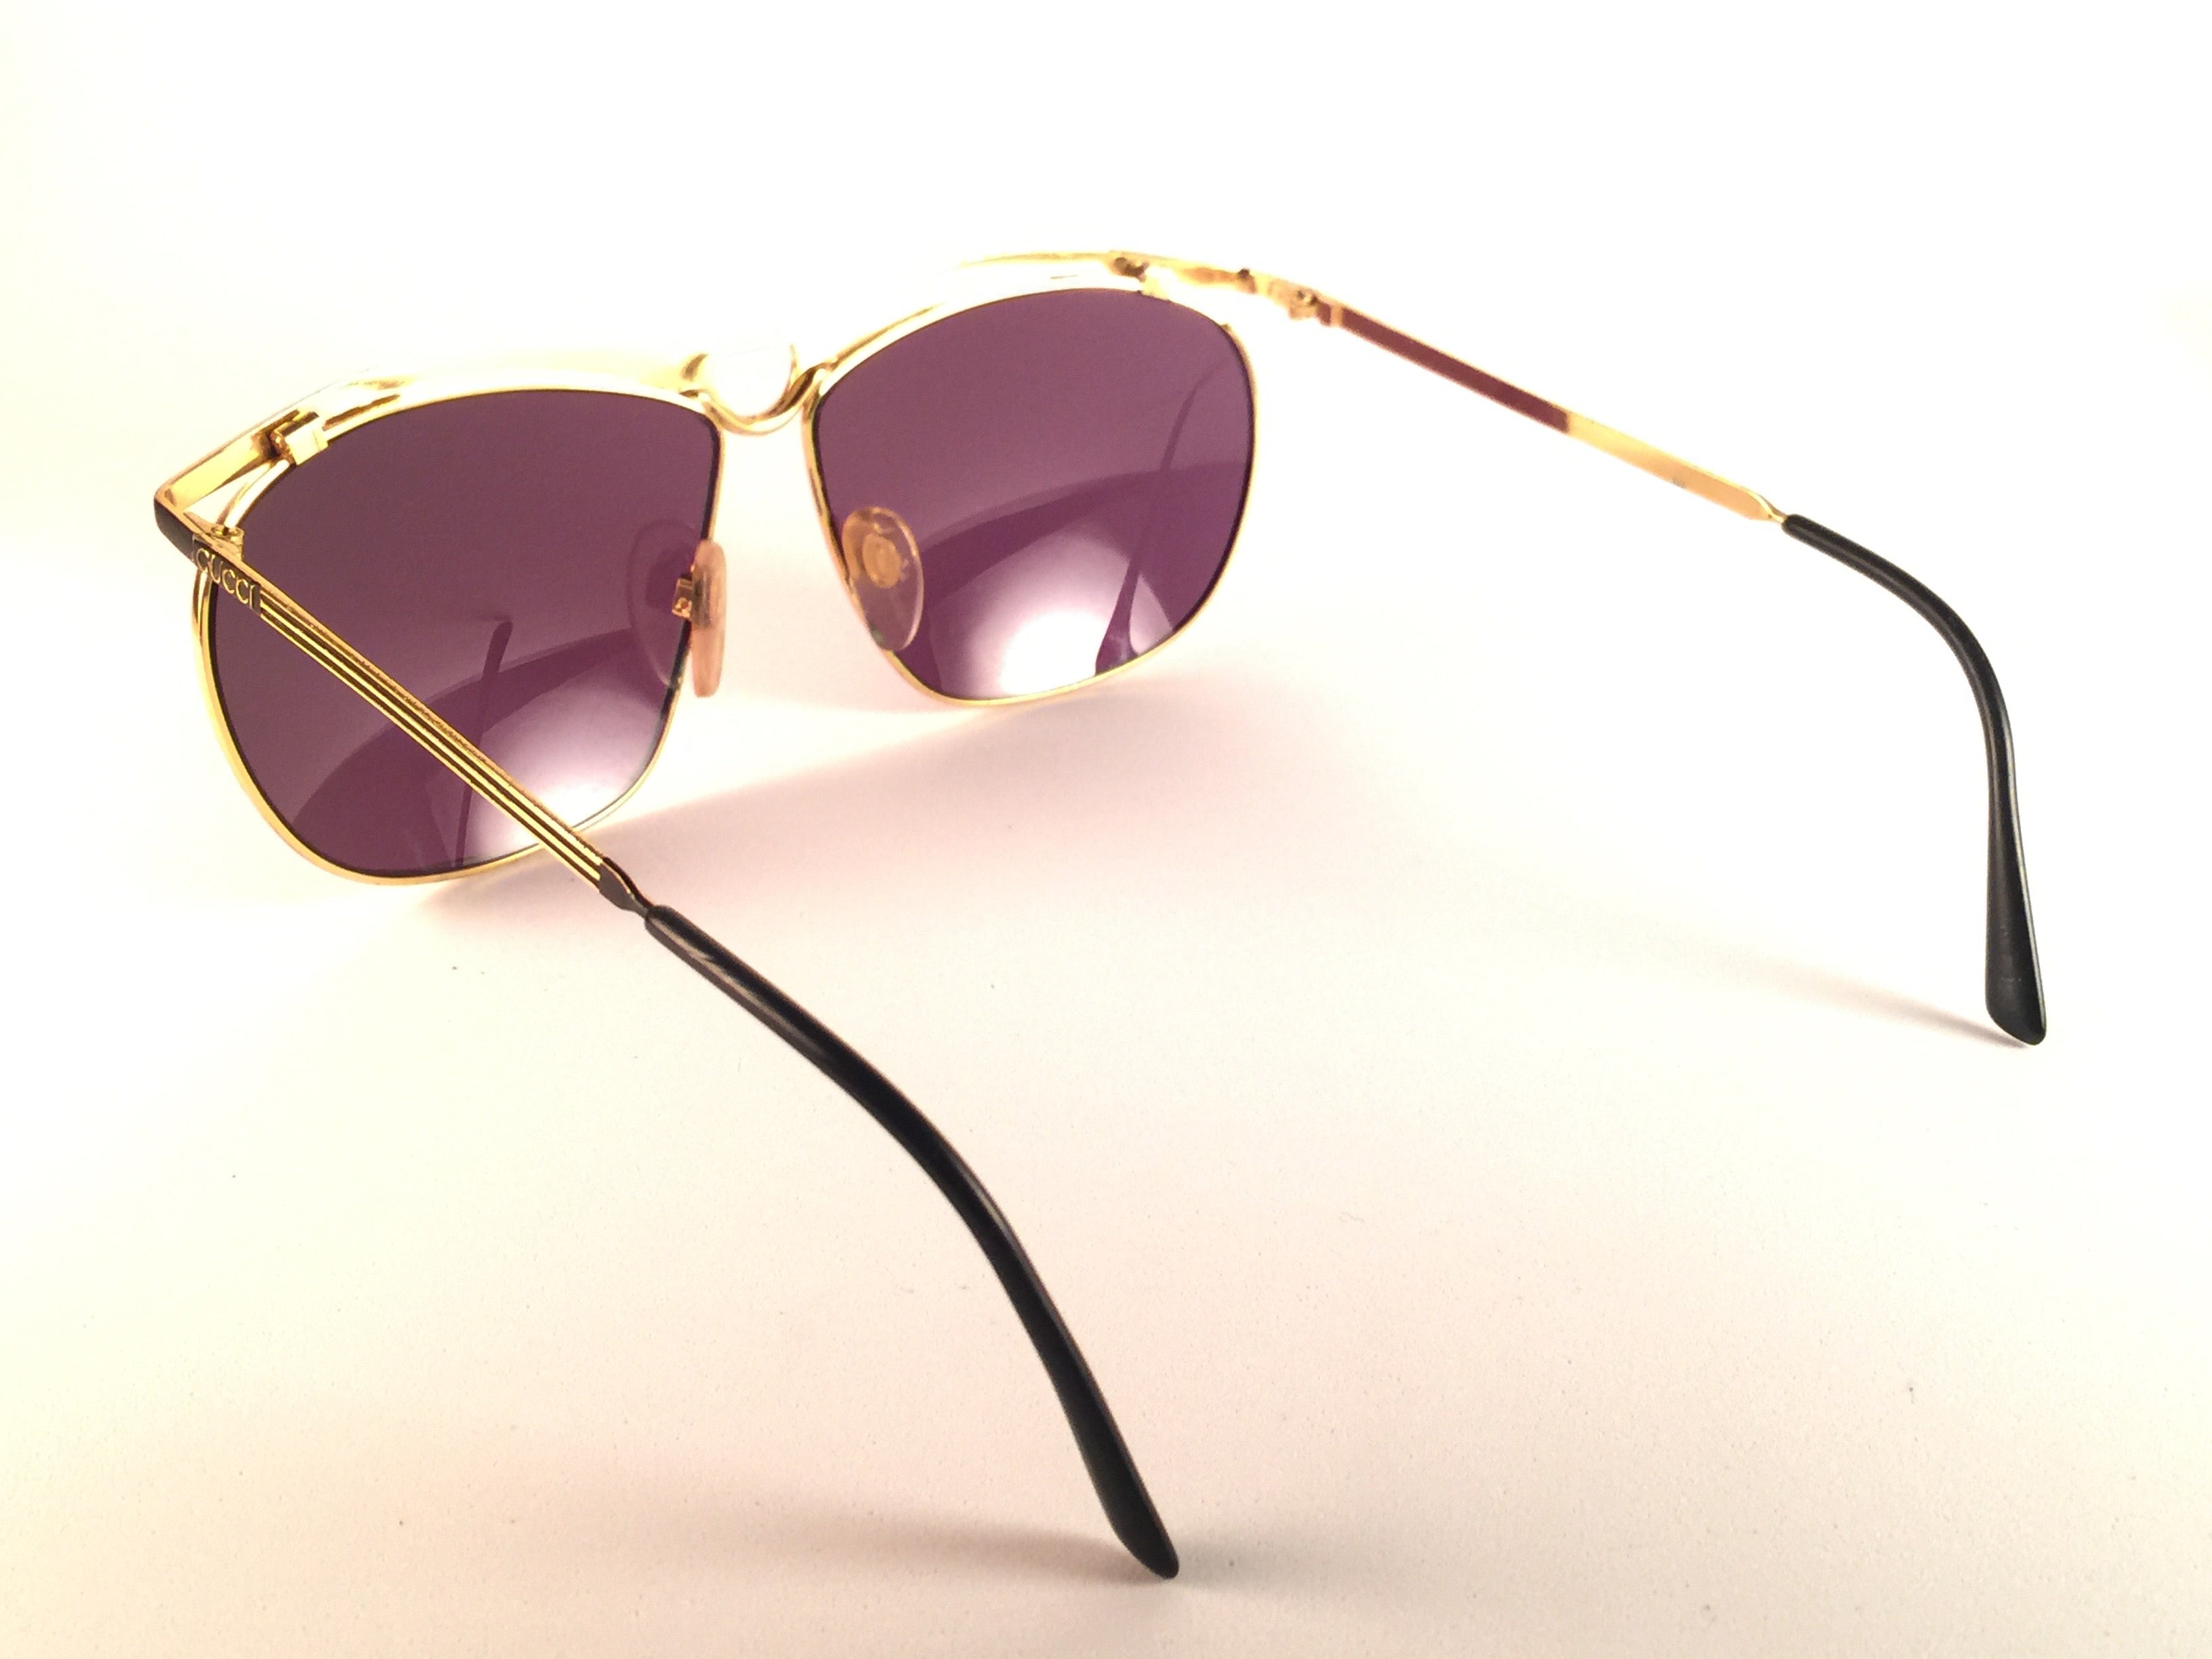 97882b900f8 New Vintage Gucci GG Black and Gold Sunglasses 1990 s Made in Italy For  Sale at 1stdibs